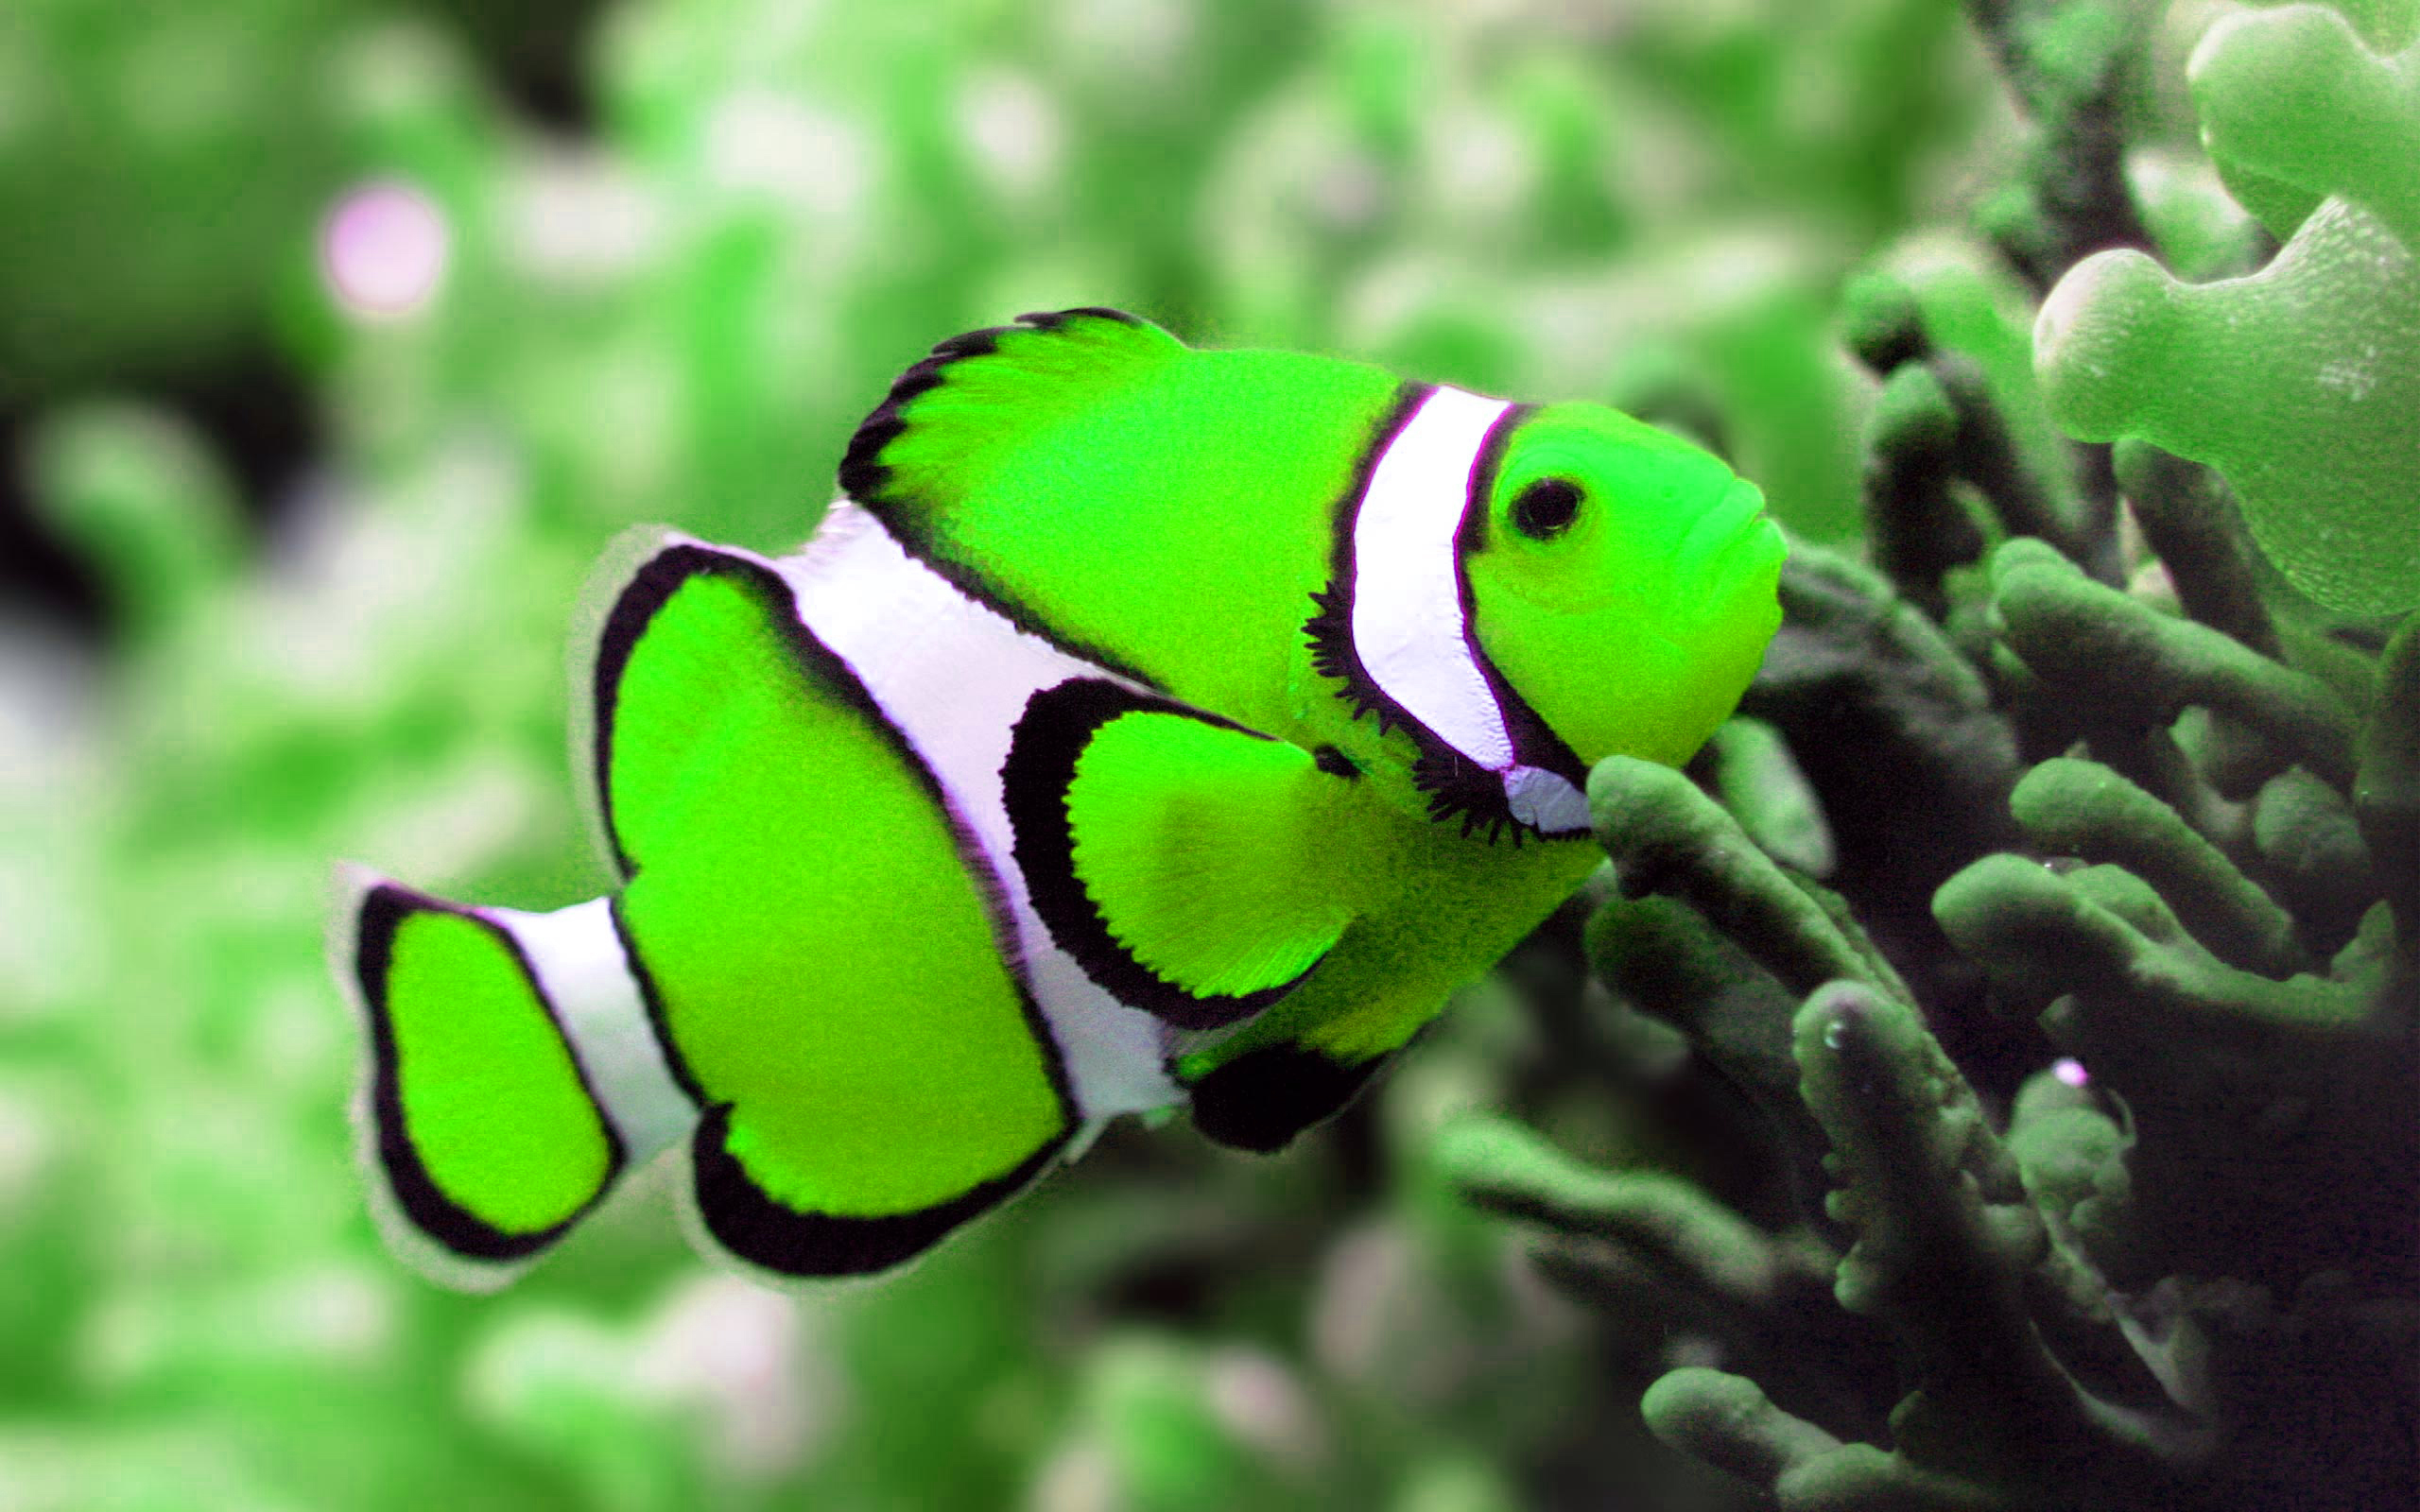 Pin Background Colorful Fish Underwater Wallpaper 26151 2560x1600